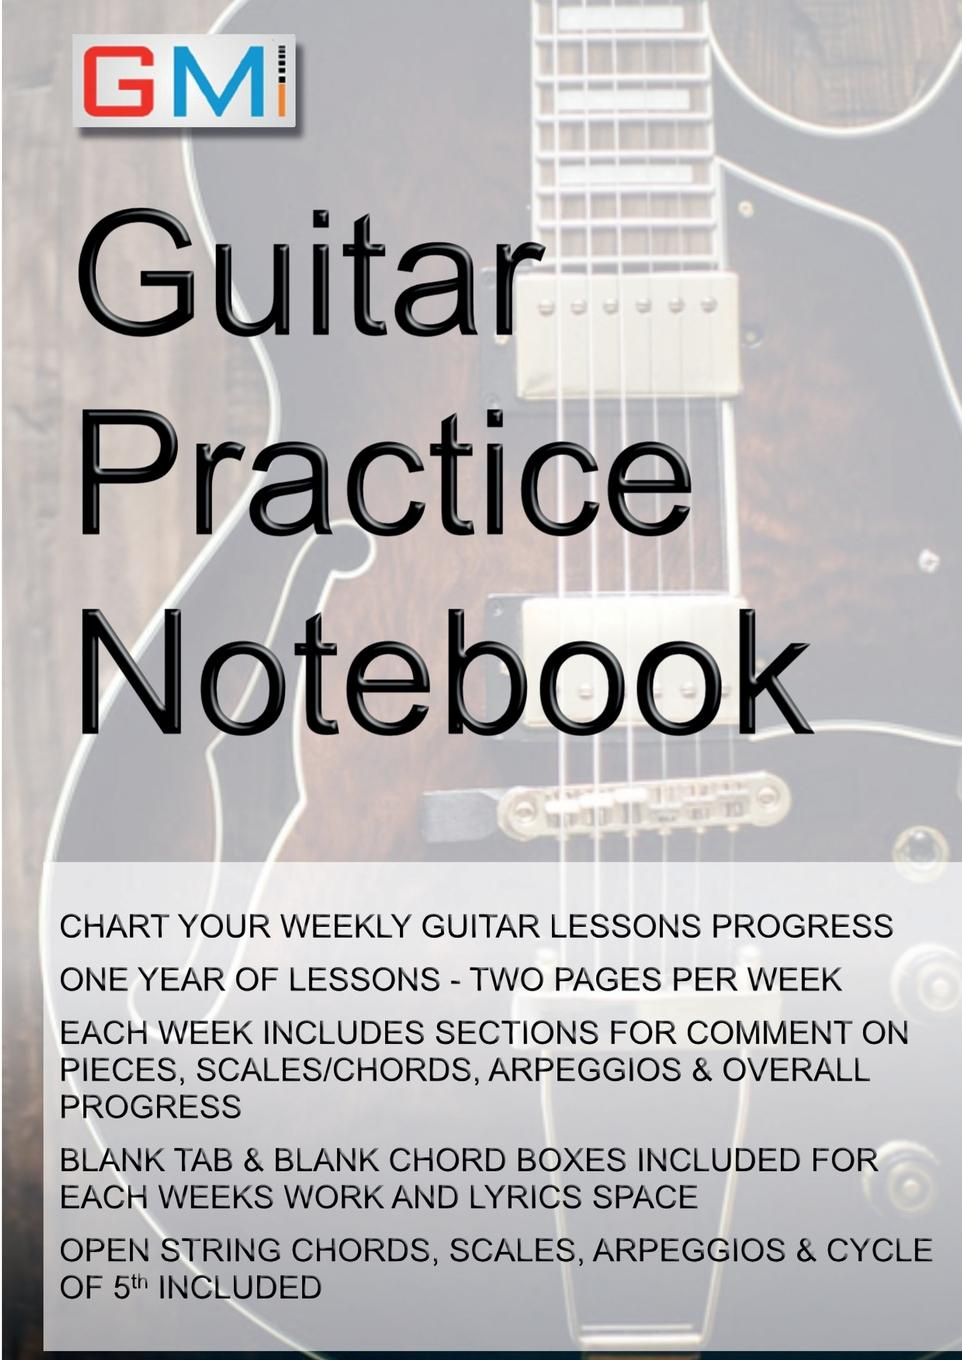 Ged Brockie Guitar Practice Notebook. Instrumental diary for guitarists free shipping new arrival high quality custom shop black flying v emg pickups electric guitar